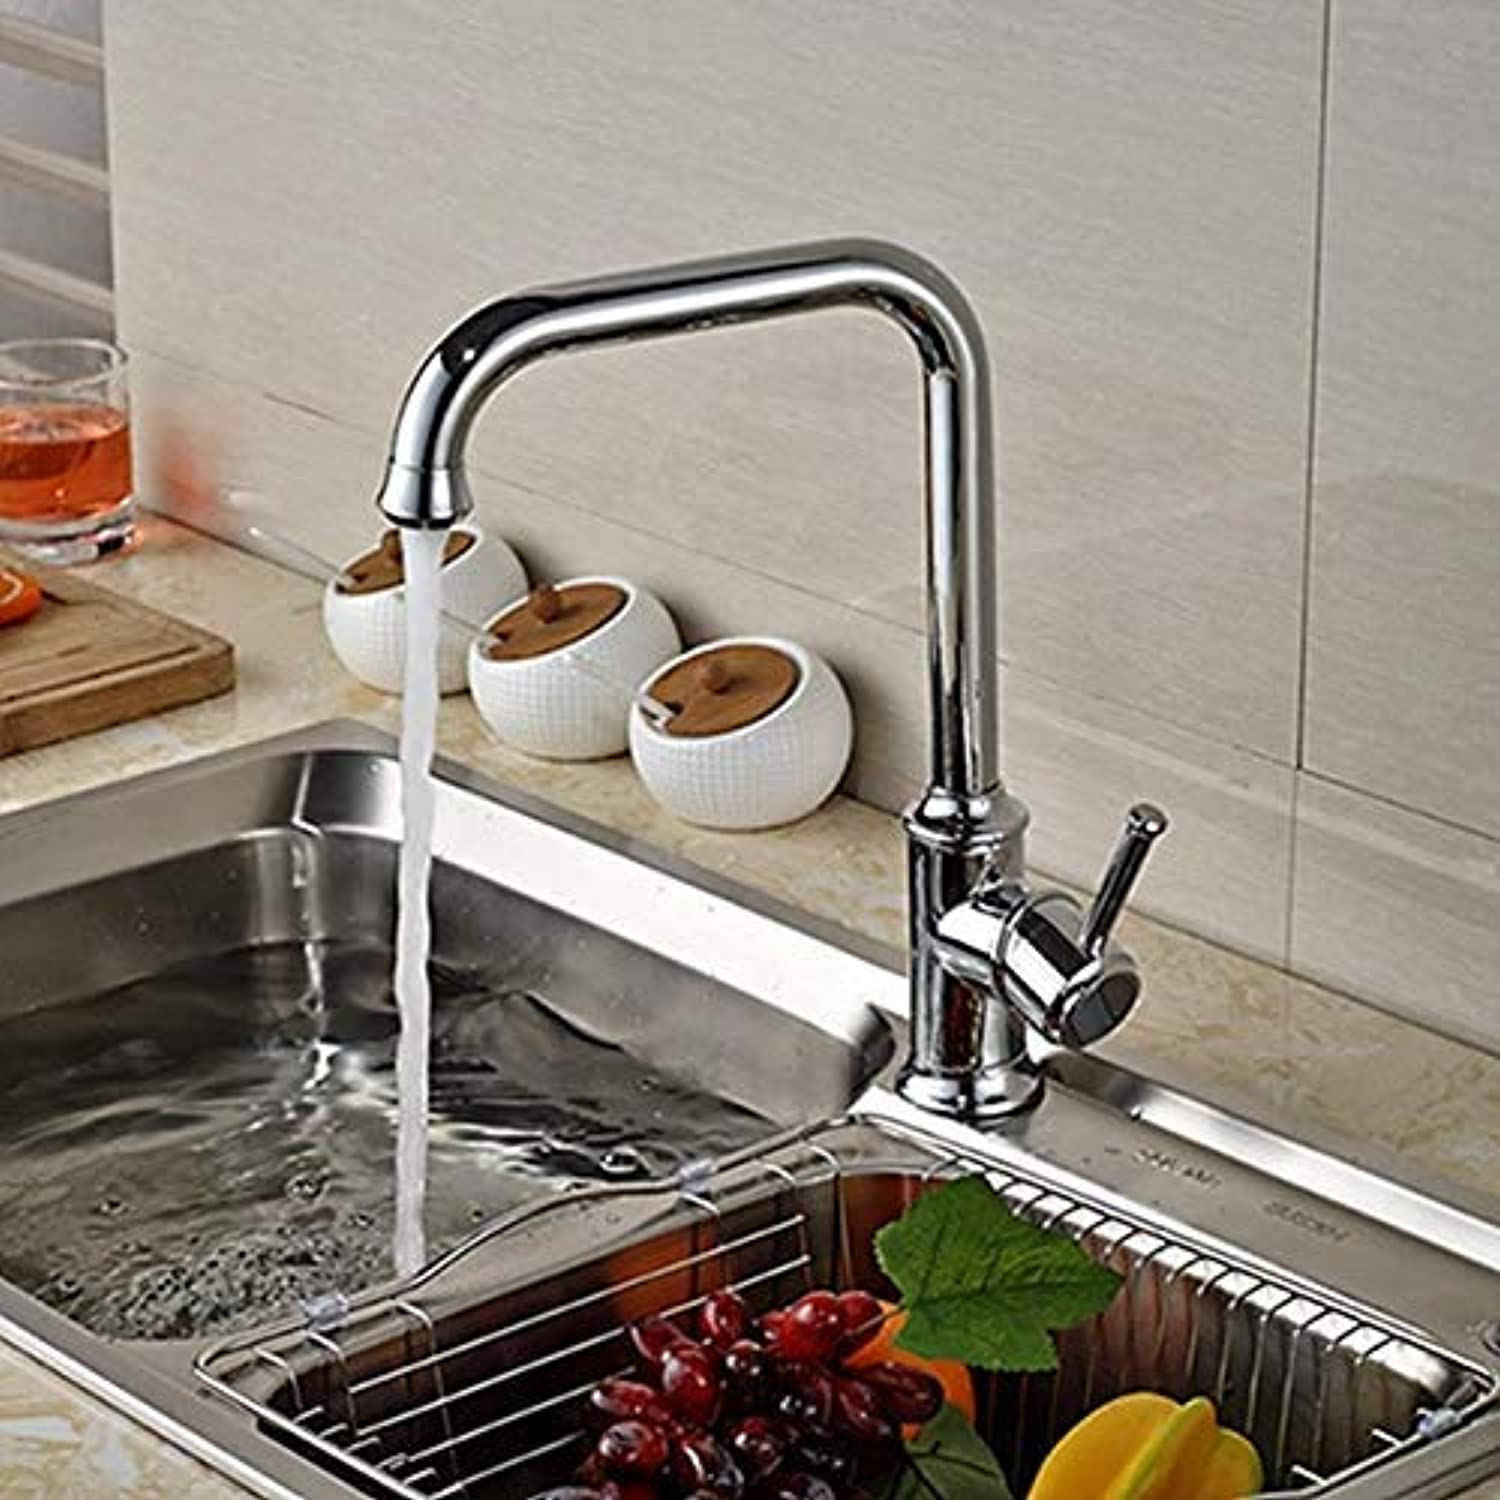 Oudan Wholesale and Retail Polished Chrome Brass Kitchen Faucet Swivel Spout Vessel Sink Single Lever Mixer Tap Hole (color   -, Size   -)